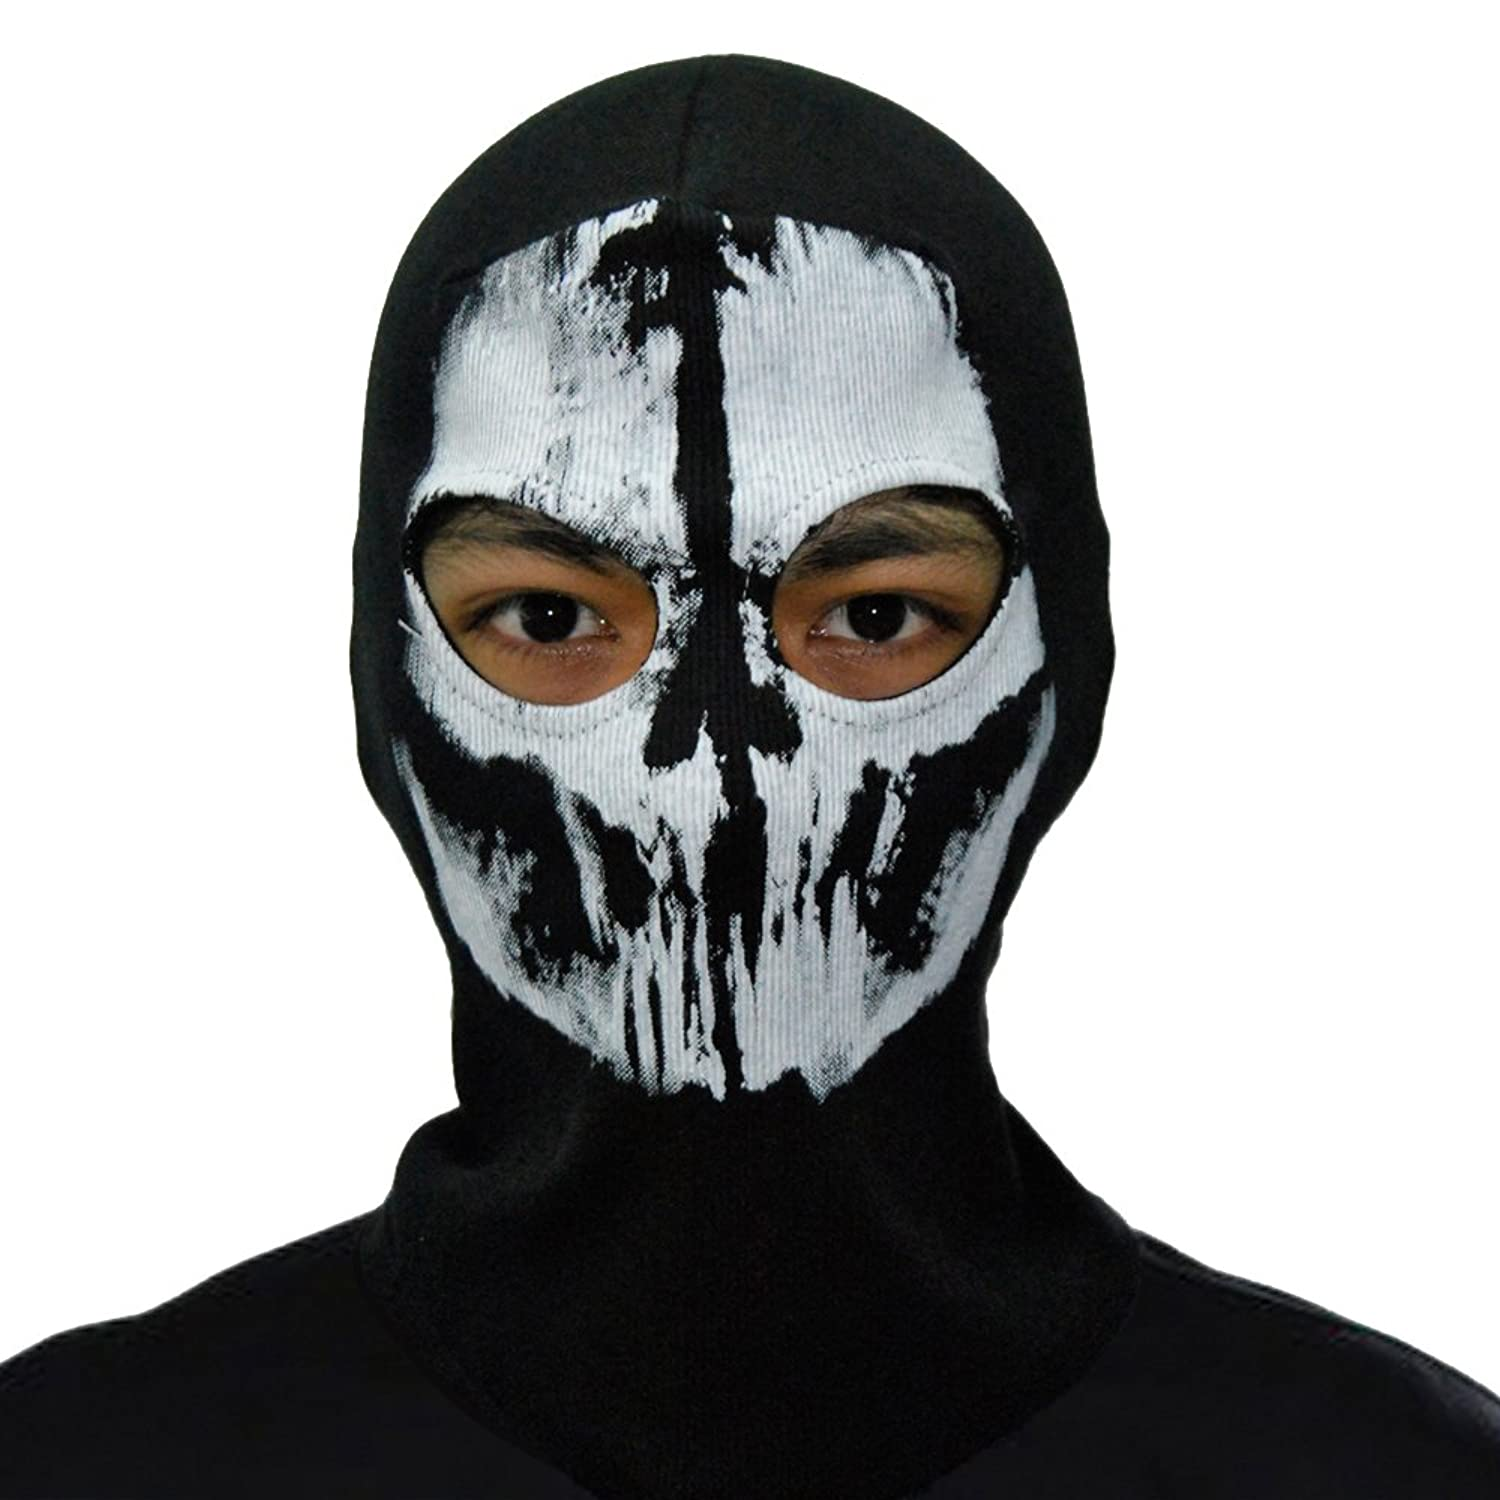 Logan Ghost Mask images